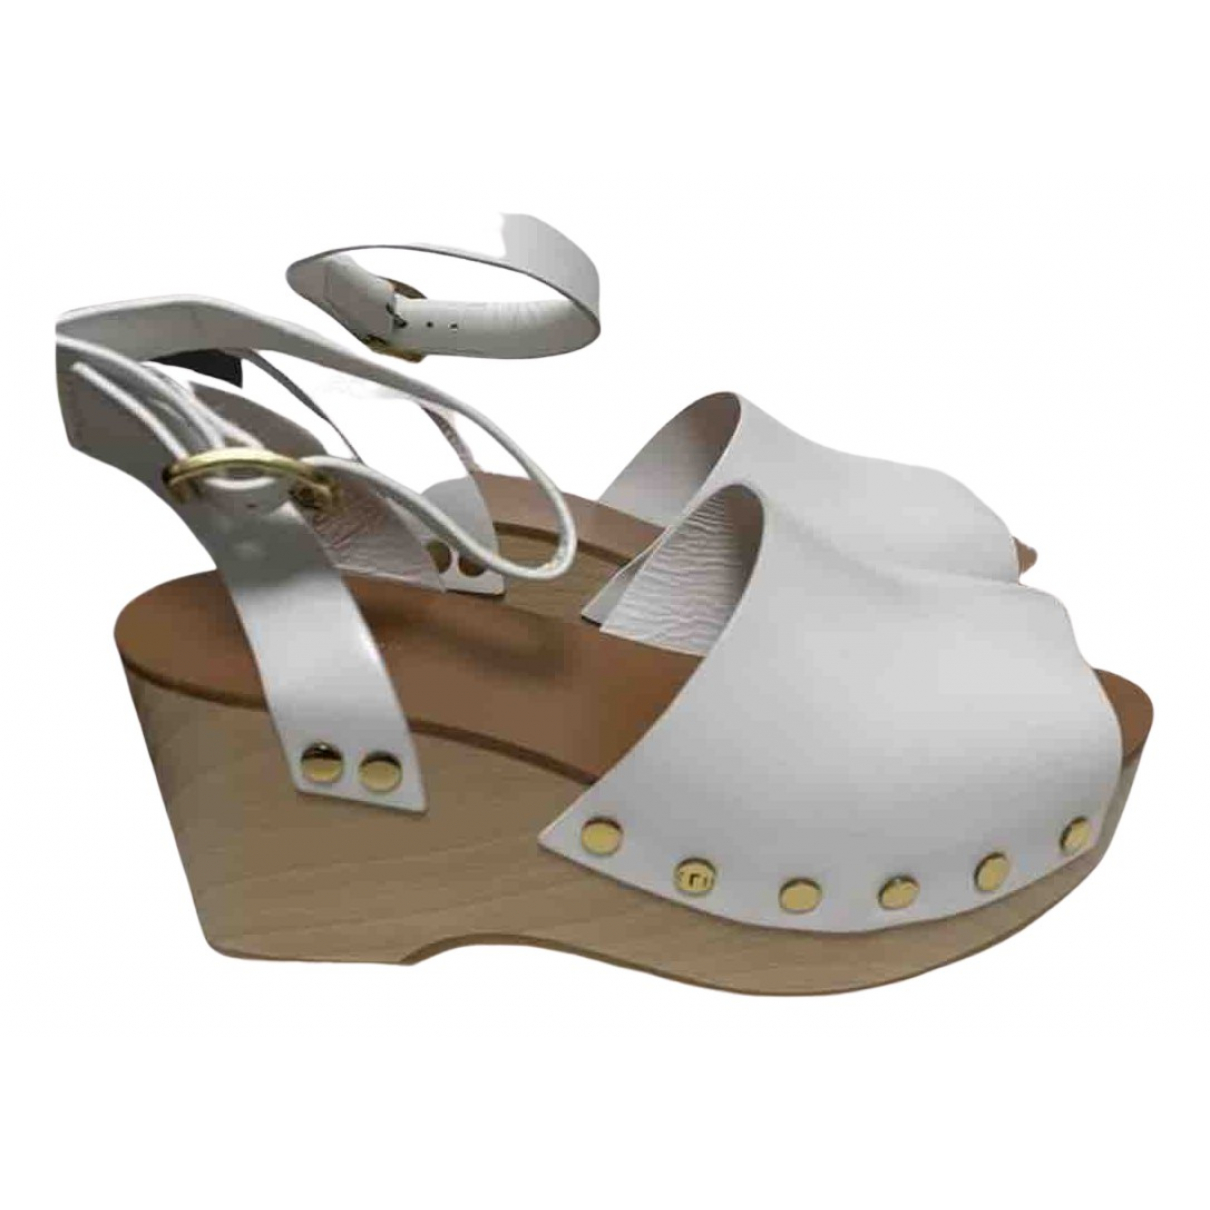 Celine N White Leather Mules & Clogs for Women 39 EU